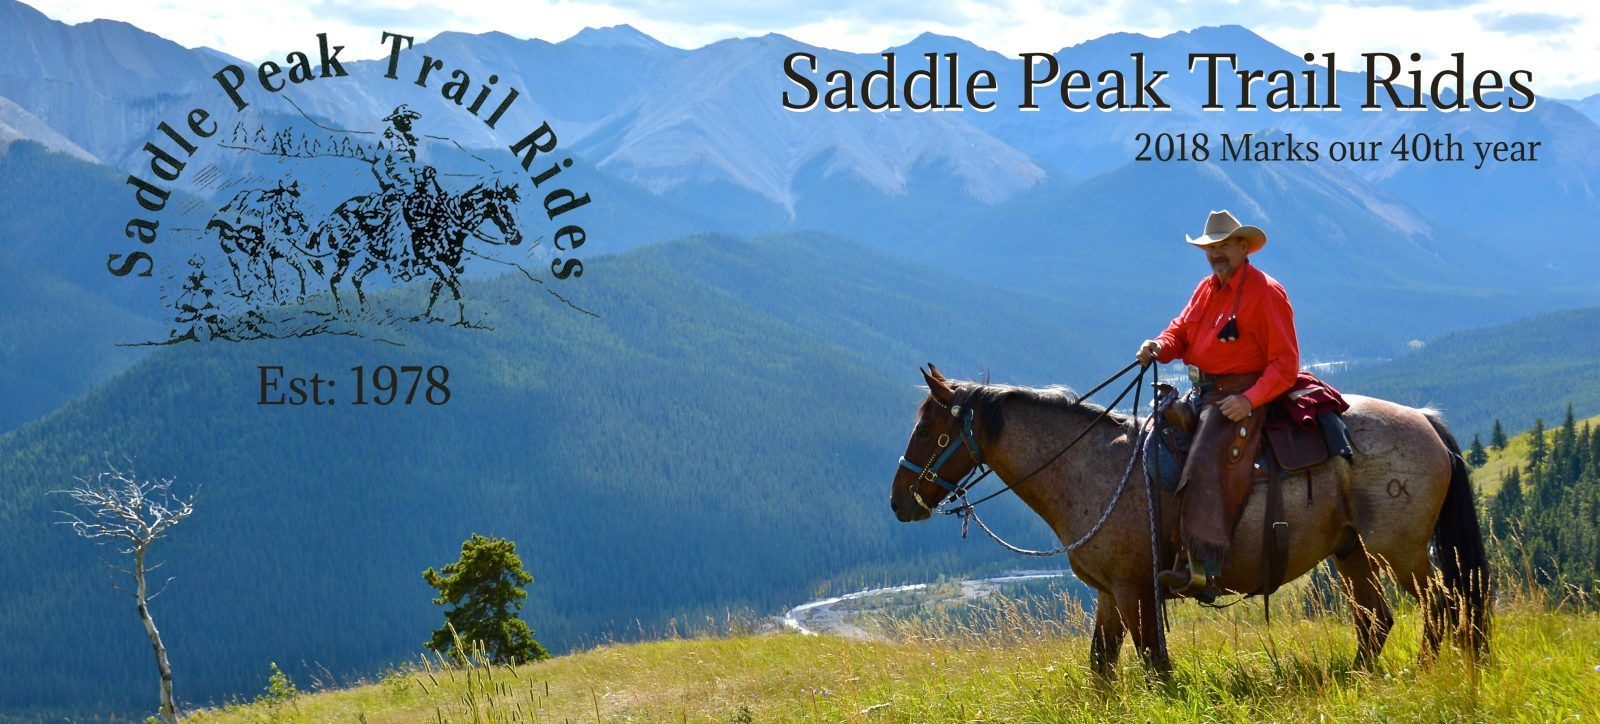 Saddle Peak Trail Rides Trail riding, Trip advisor